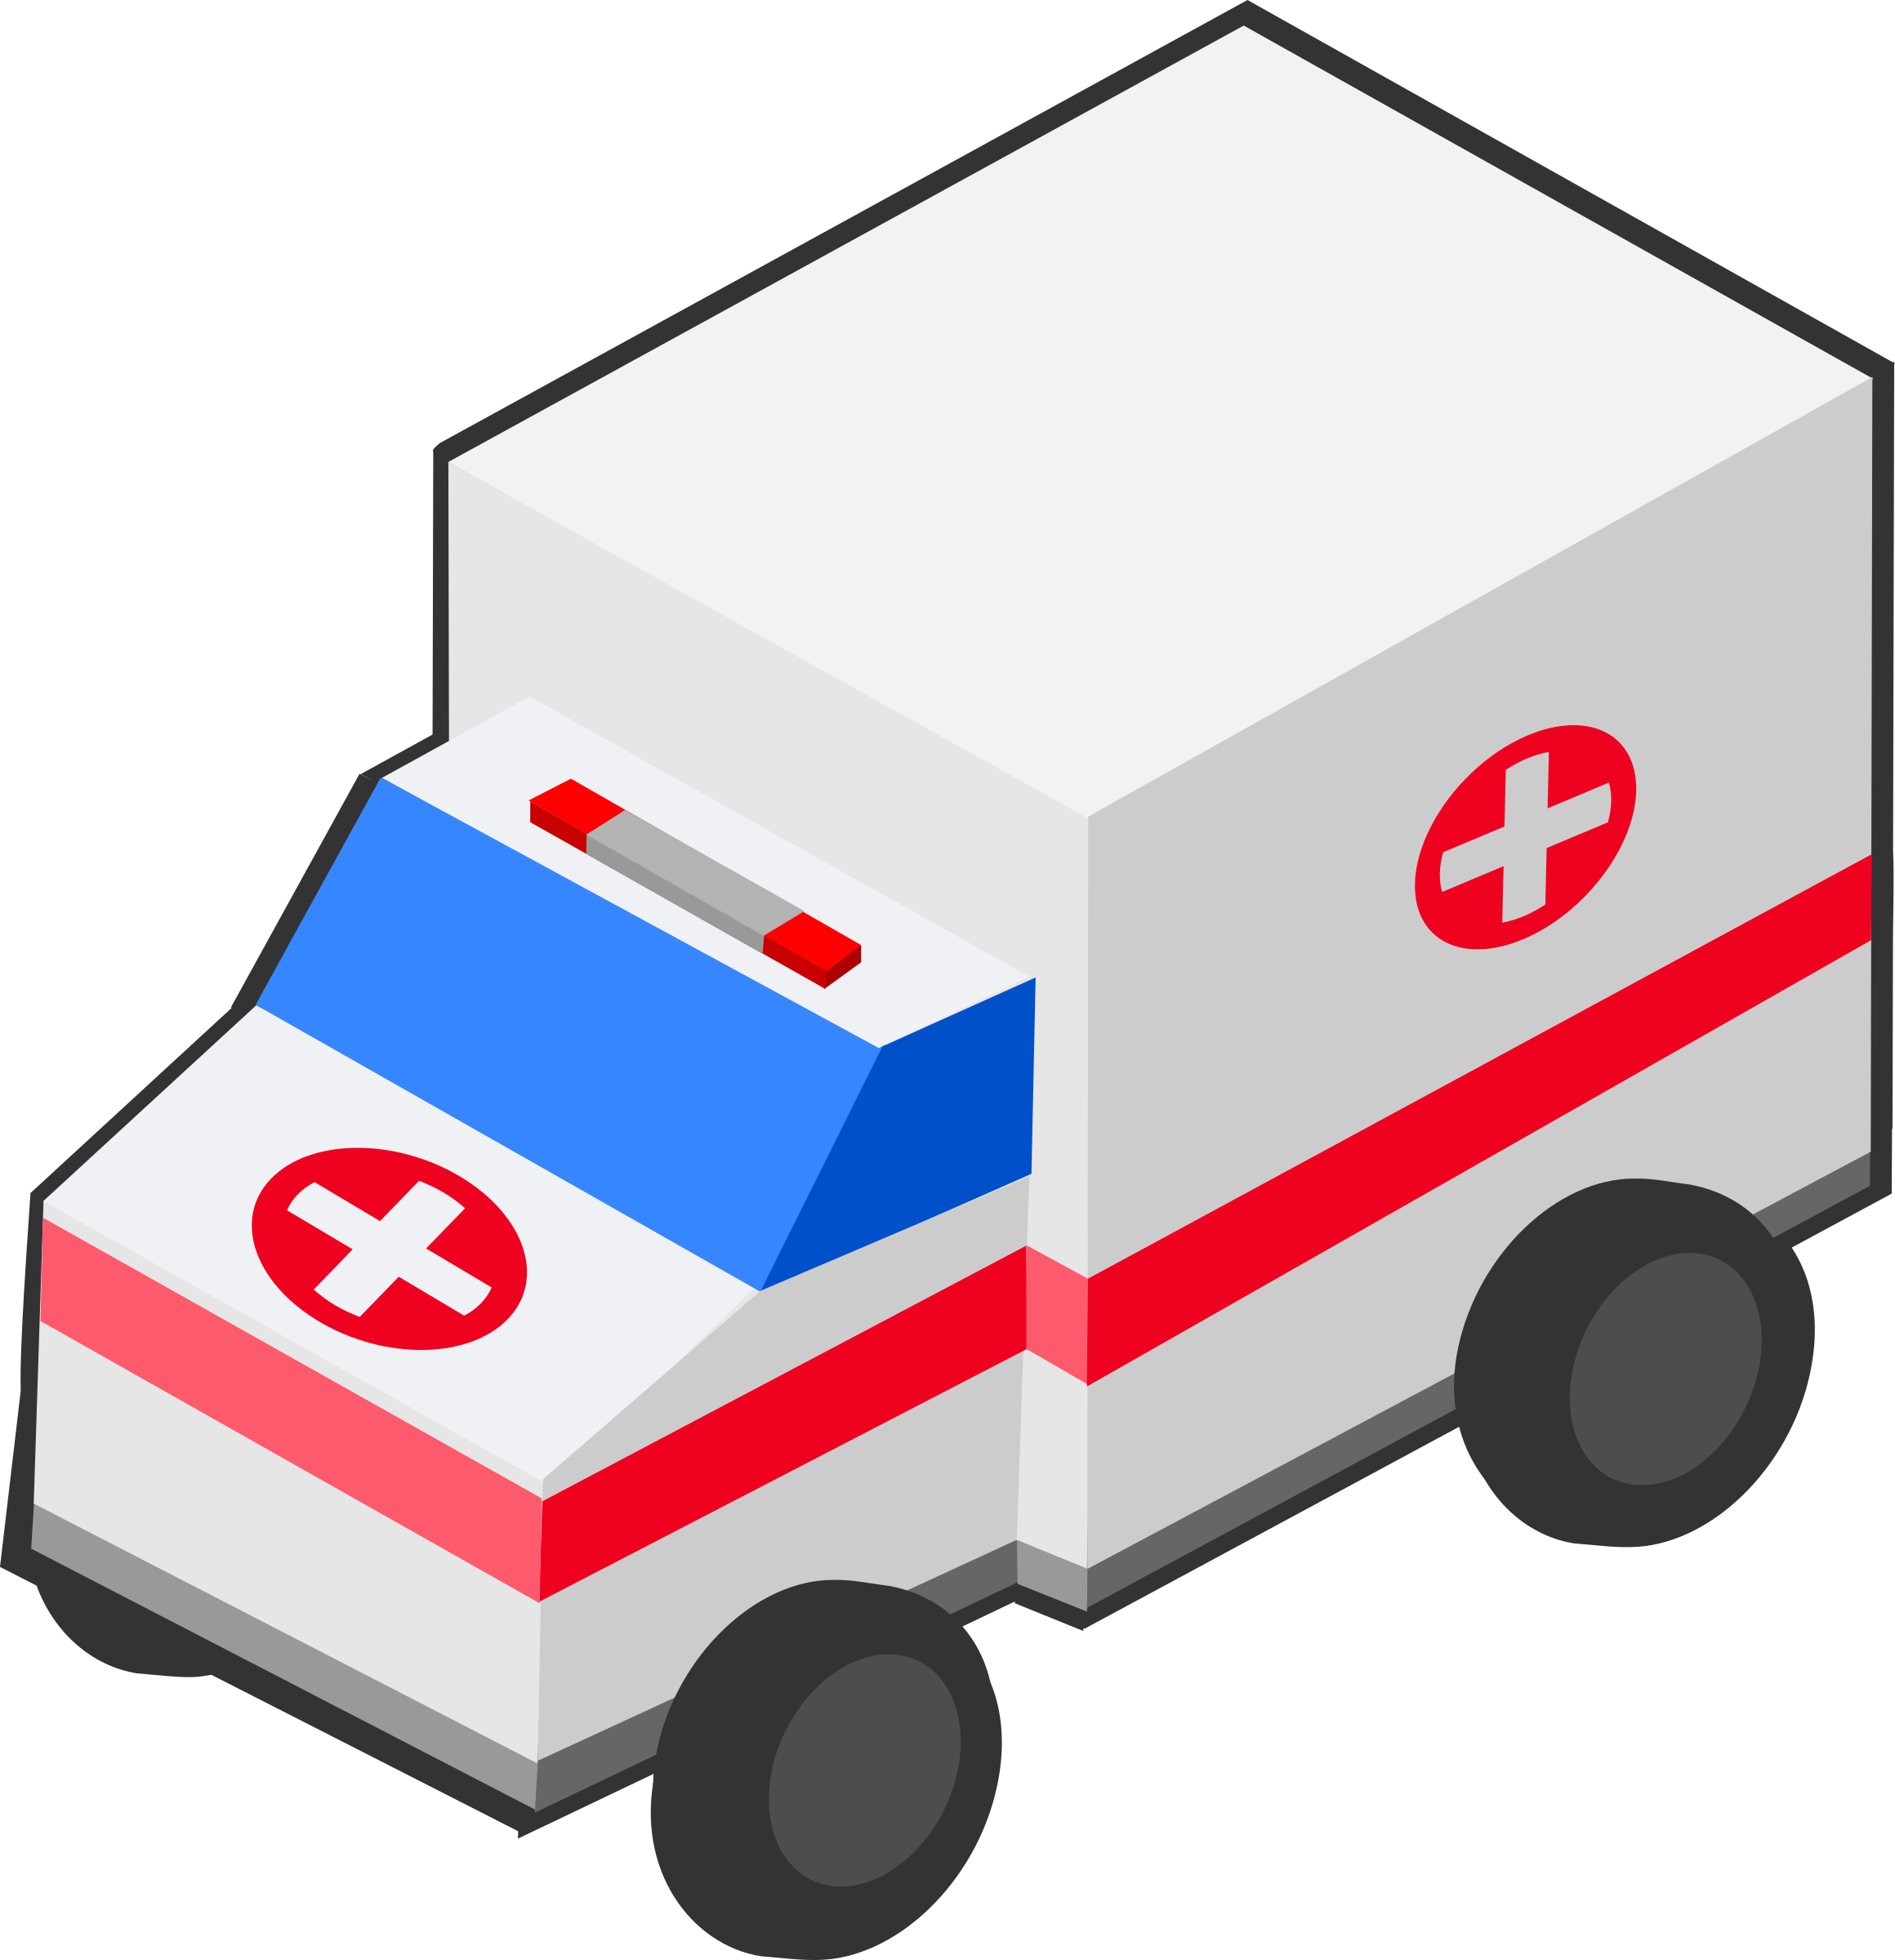 Download image See more images. Tags: AmbulanceEmergency vehicle - Emergency Vehicles PNG